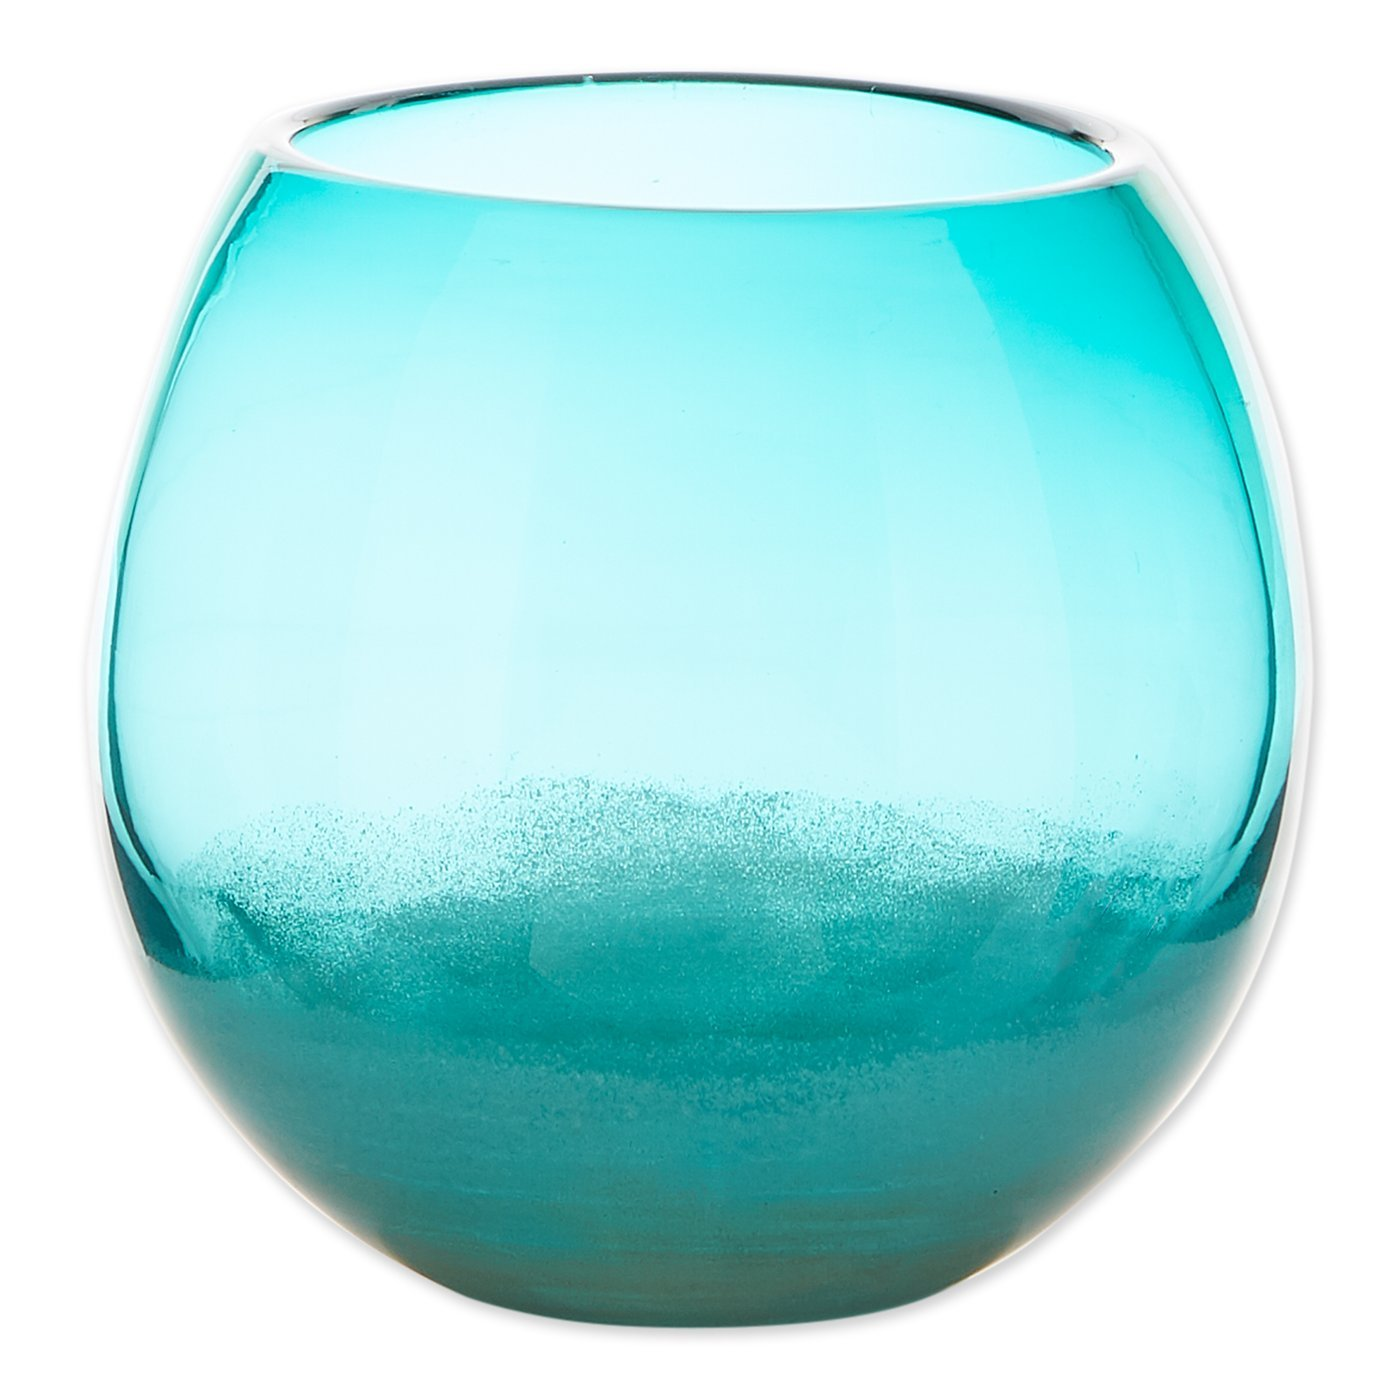 "Primary image for Large Aquamarine Fish Bowl Art Glass Vase or use as Decorative Piece 7.25"" High"